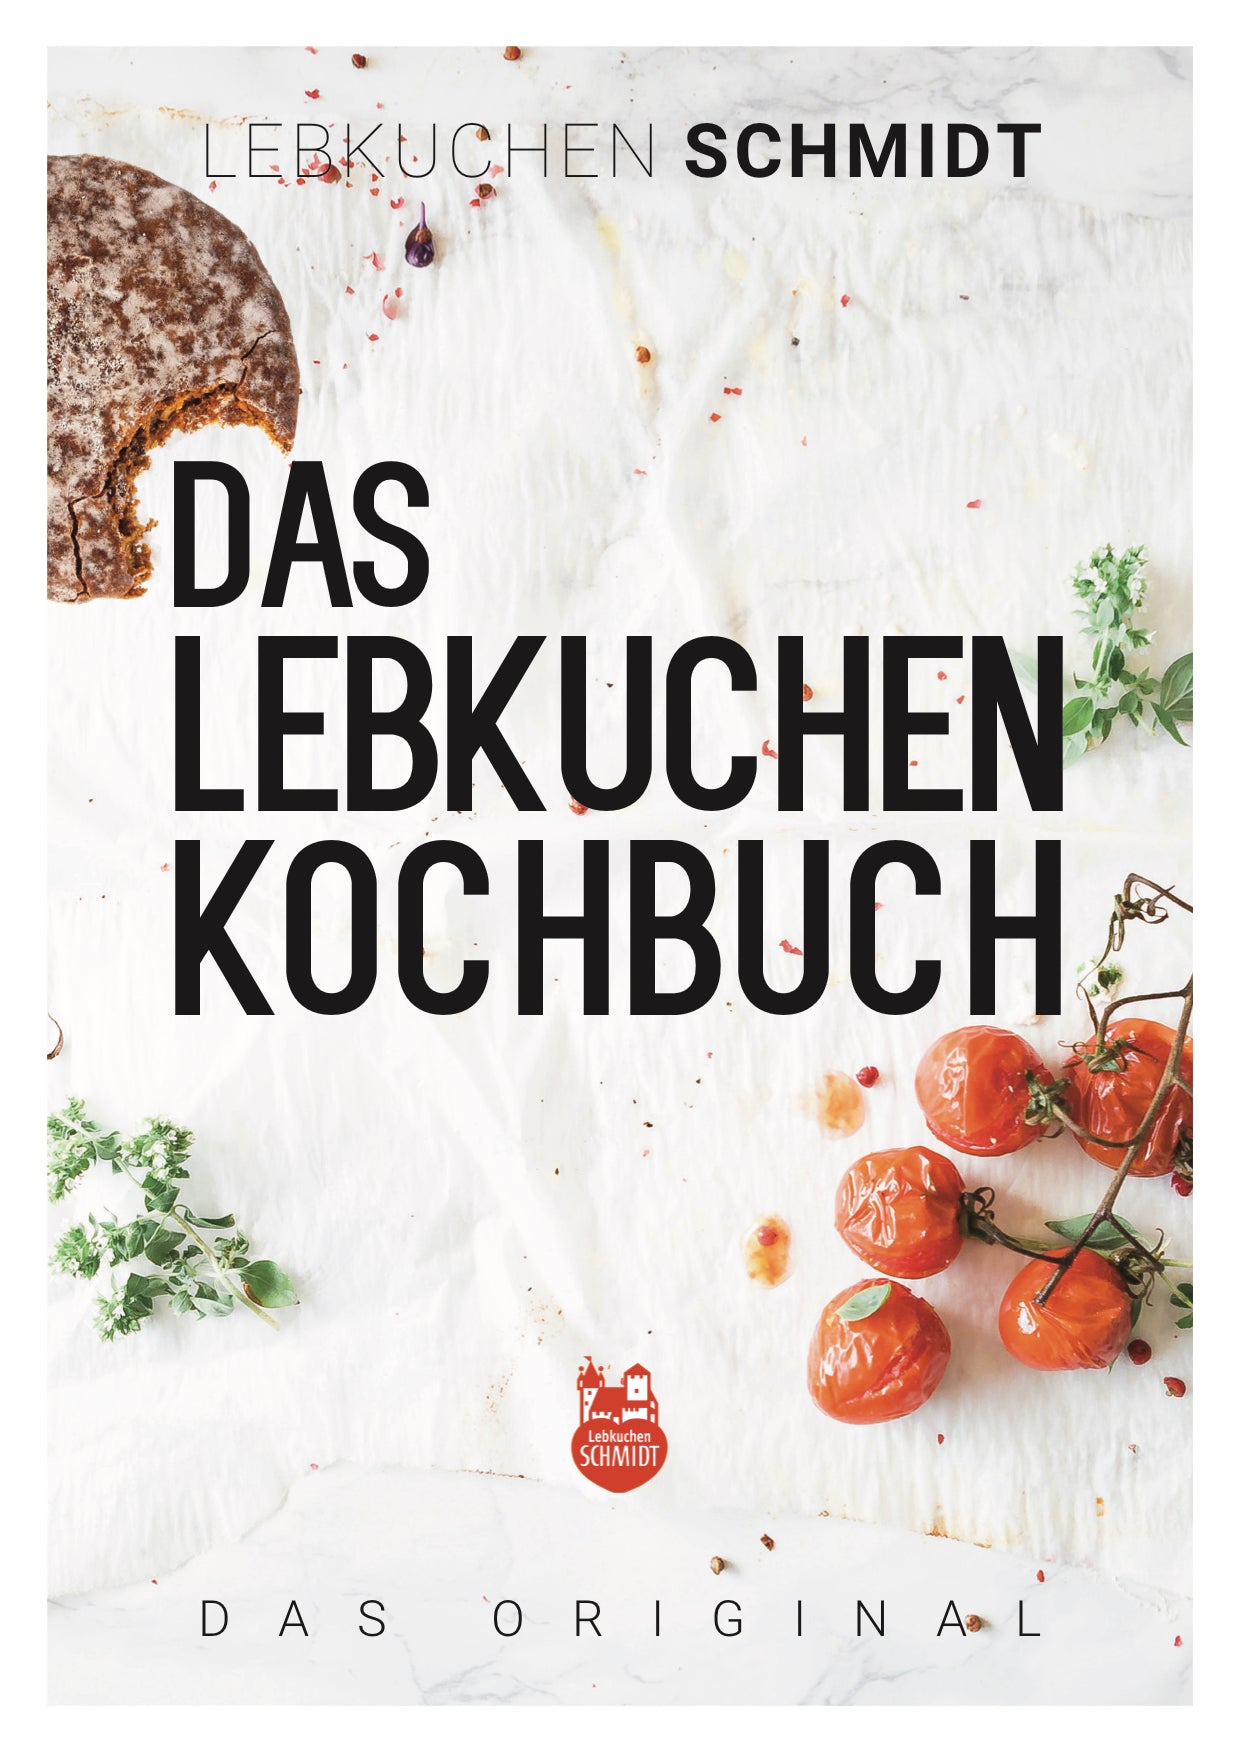 Lebkuchen Schmidt Cookbook - Creative Recipes with Famous Nuremberg Gingerbread